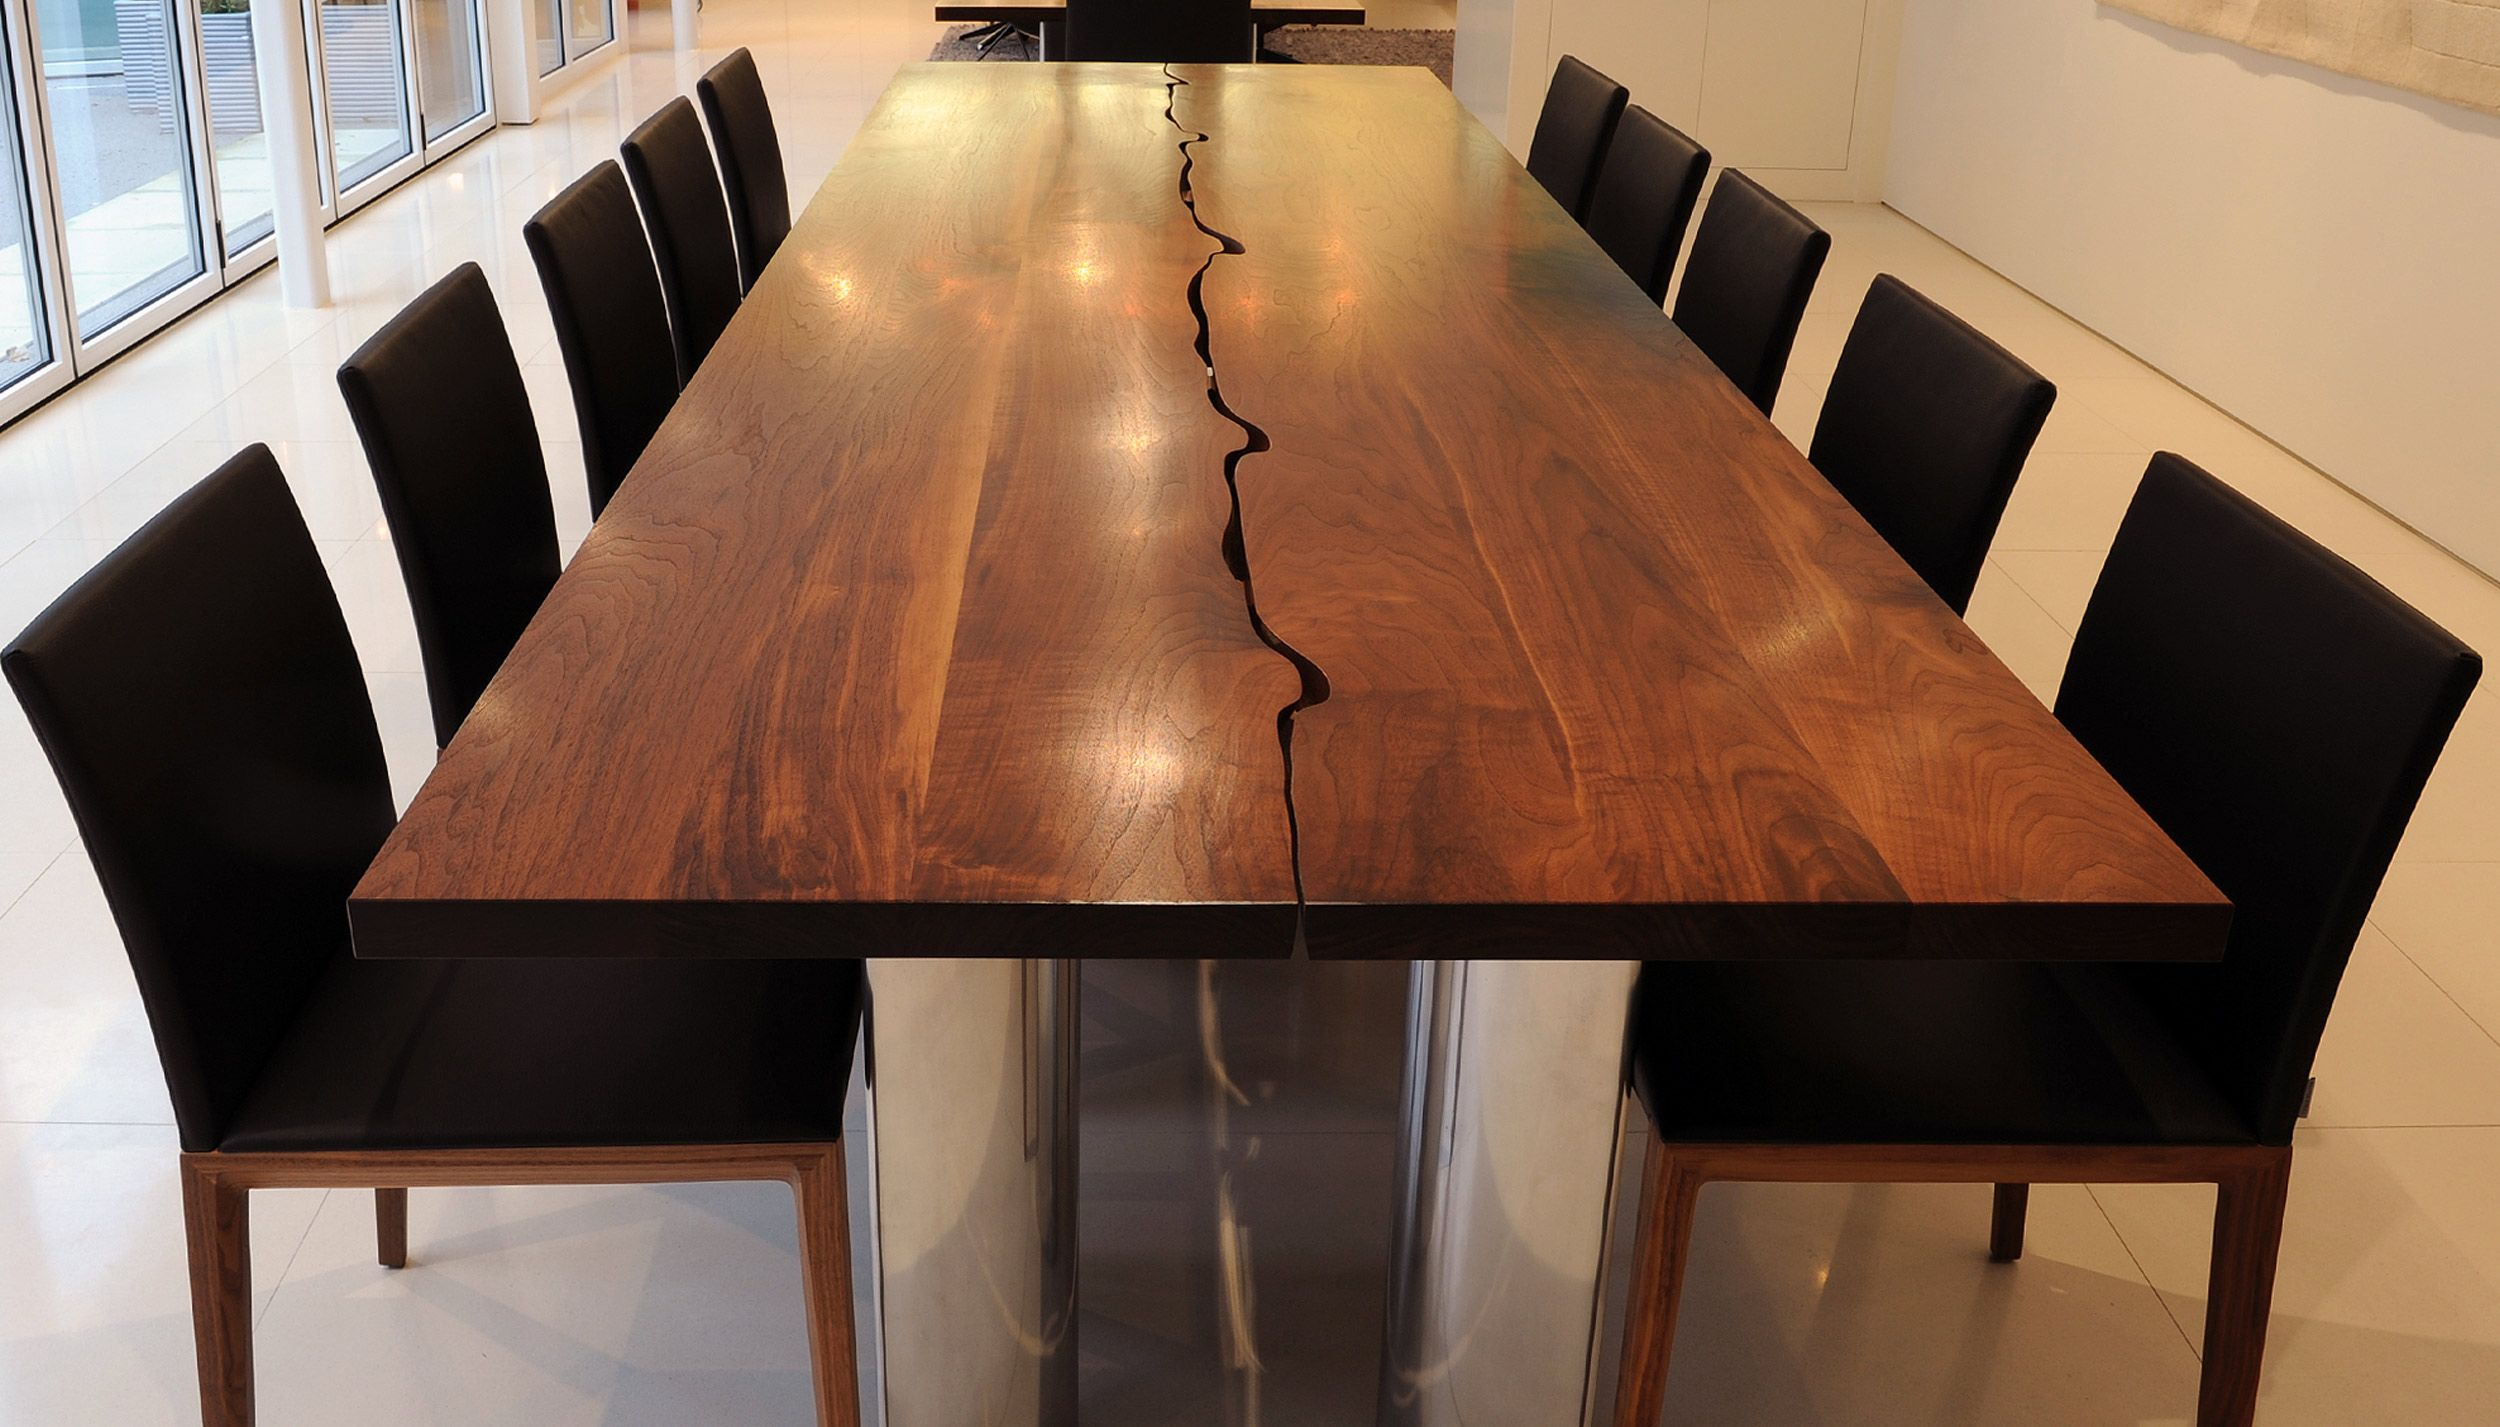 wooden kitchen table Round Modern Dining Table And Large Brown Glaze Teak Wood Dining Table With Stainless Steel Based Legs Combined With Black Suede Fabric Armless Chairs Also